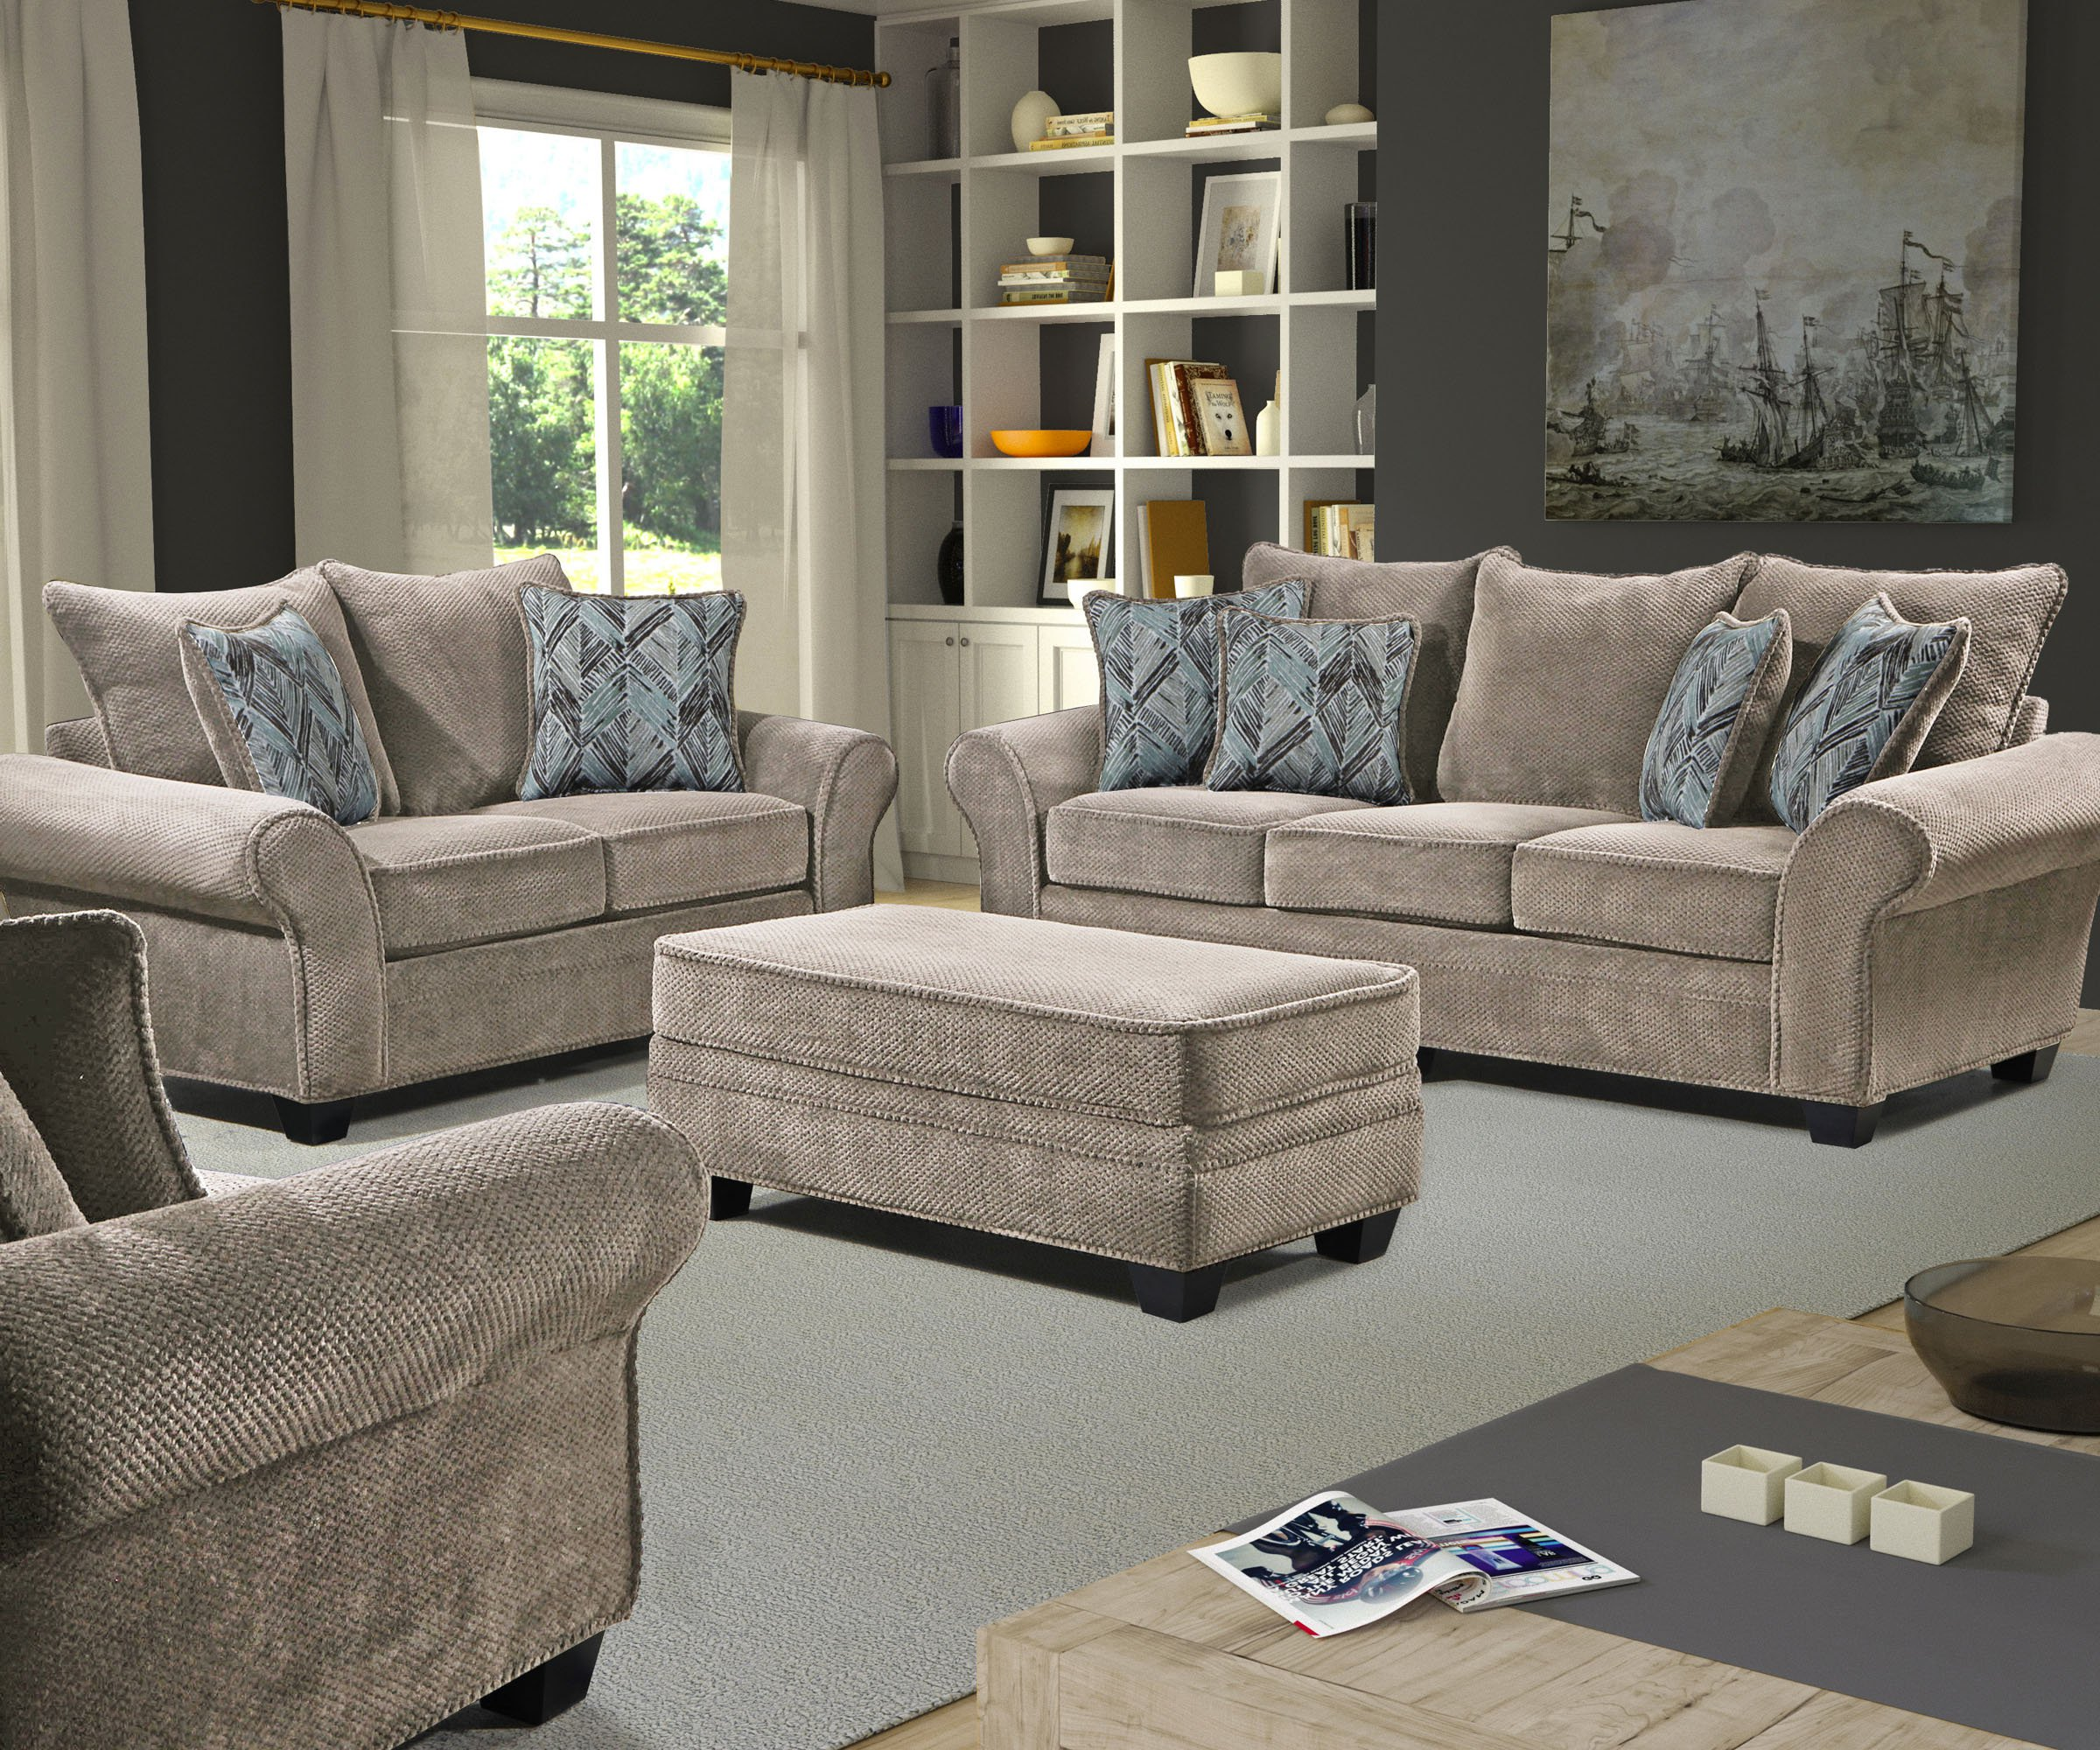 Behold home trinidad sand sofa and loveseat for Living room furniture trinidad